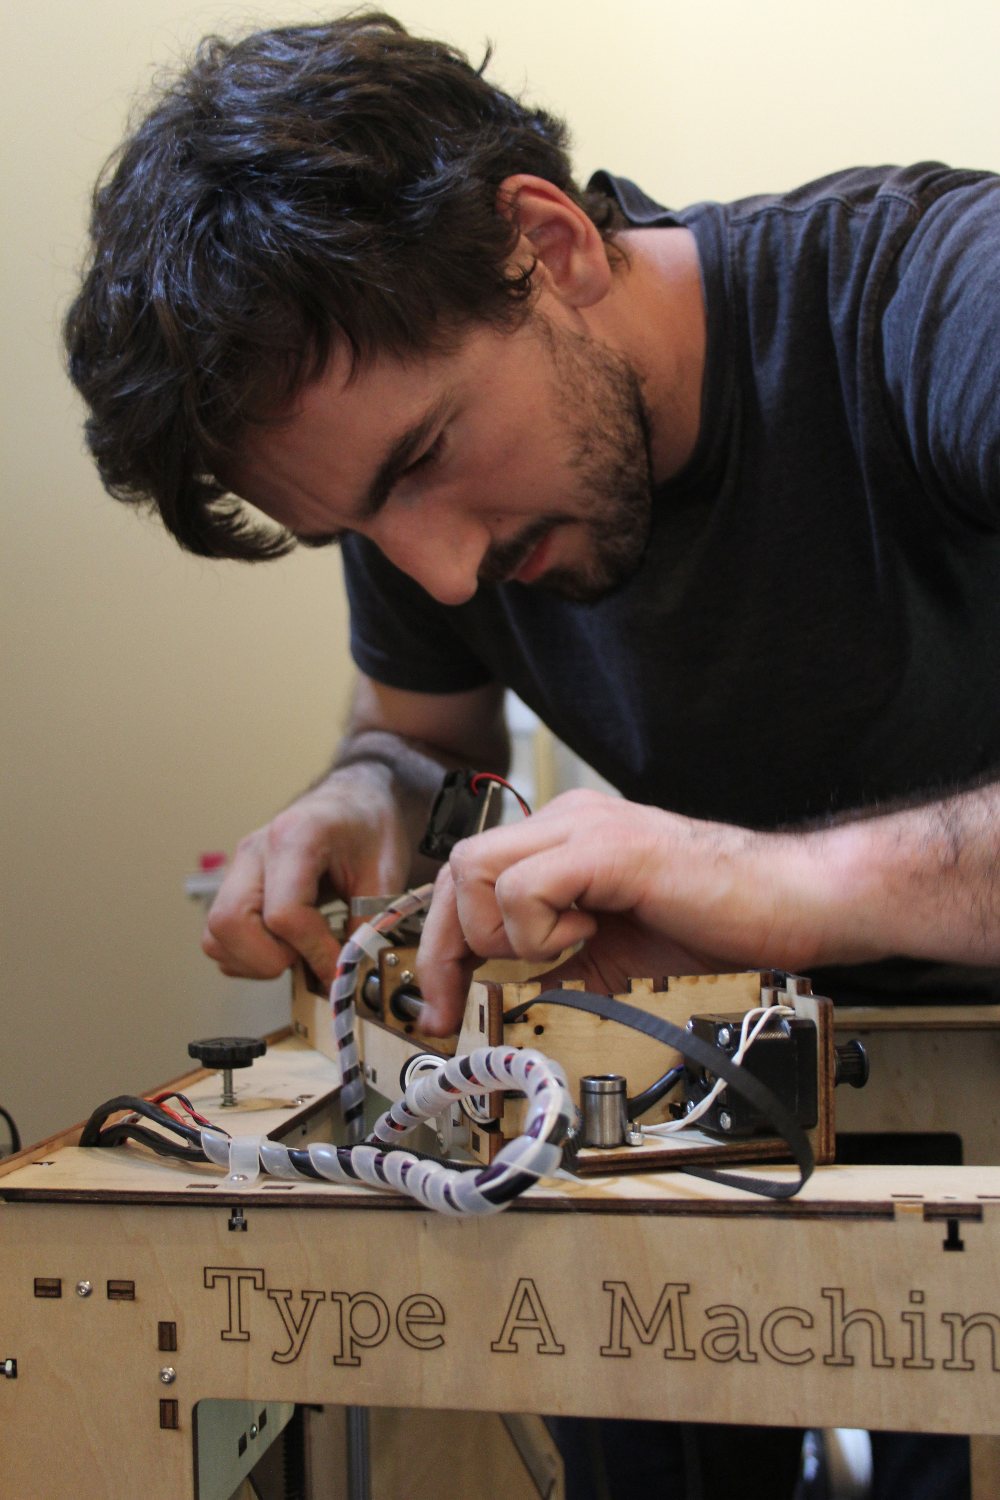 Bryan Allen adjusts a piece on one of the 6 Type A Machines printers working to produce the Smith|Allen sculpture